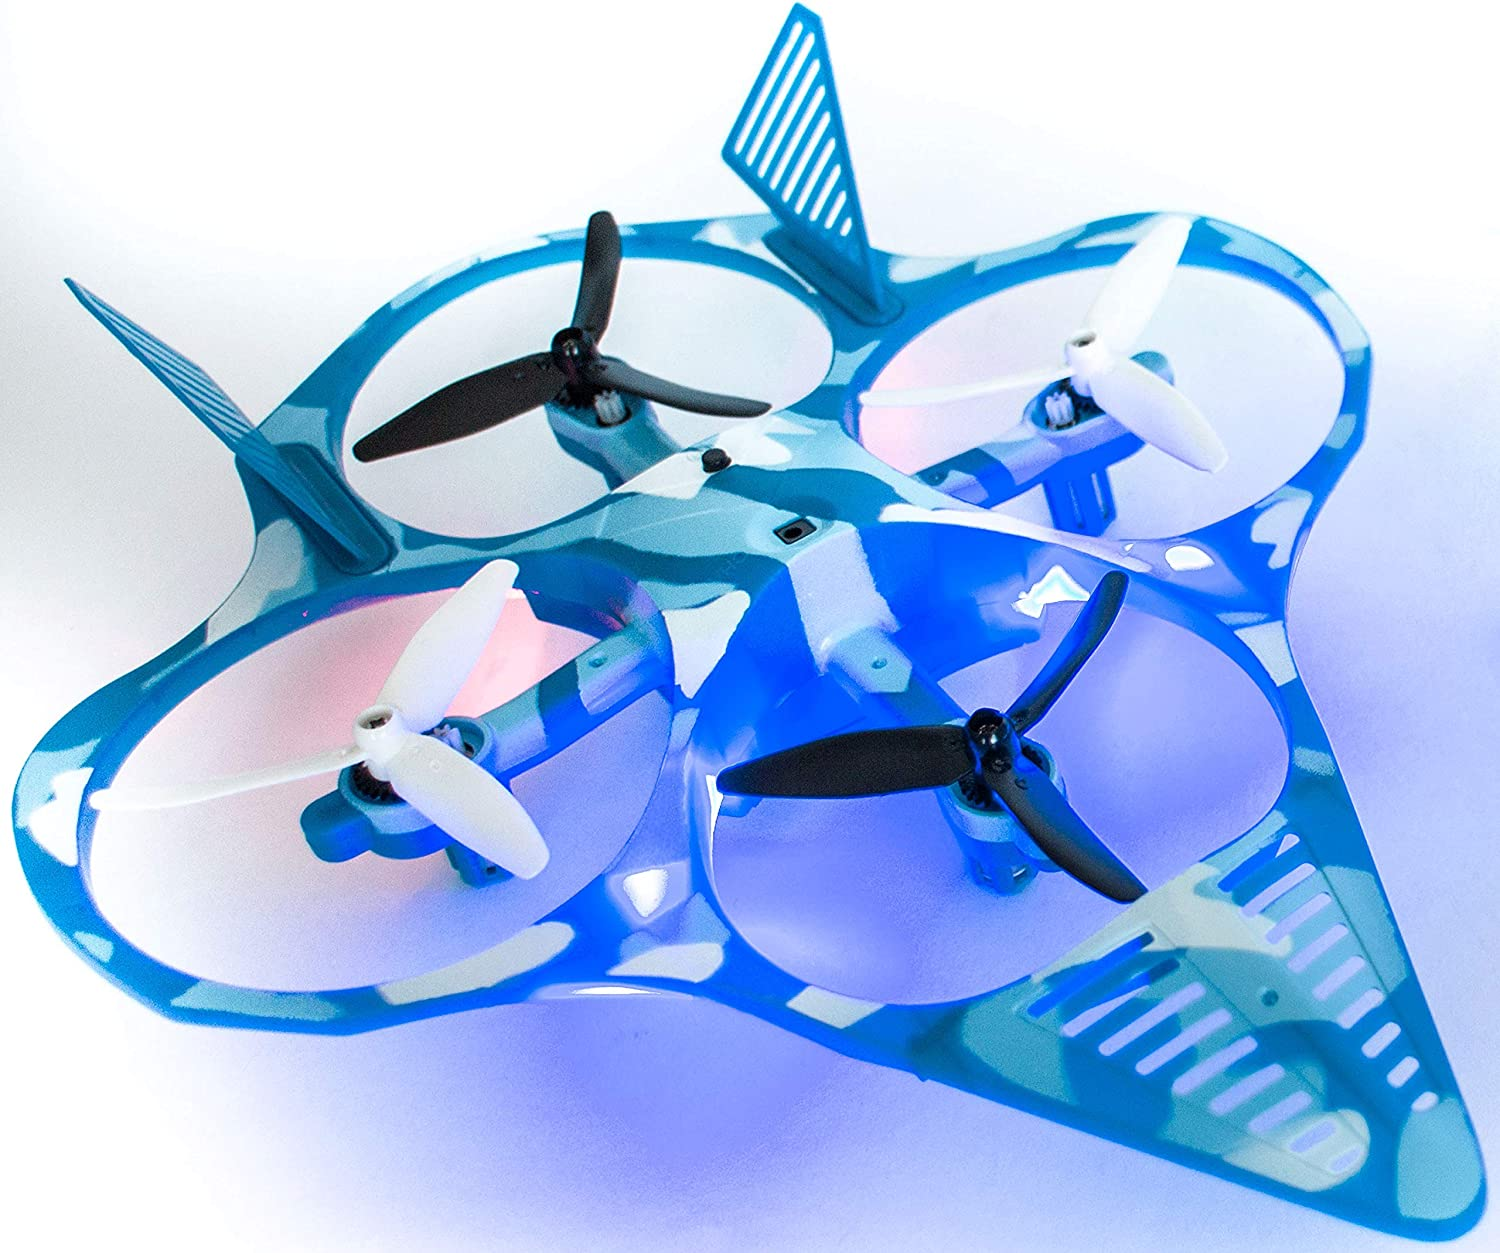 EWONDERWORLD Fighter Jet Drone for Kids Quadcopter Easy to Fly Toy Drone for Beginners